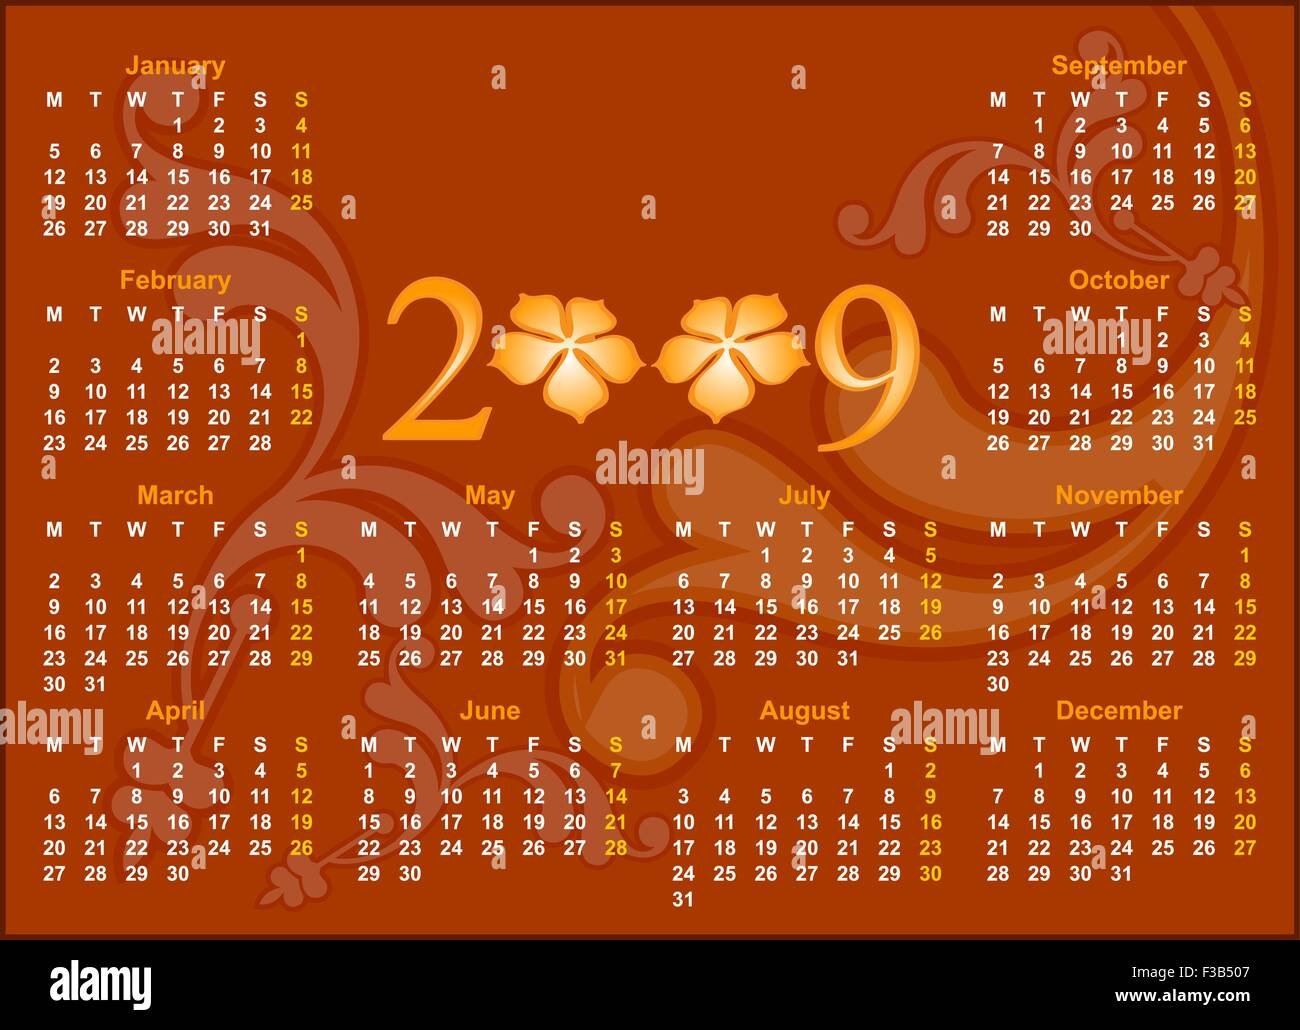 Calendar Design 2009 Vector Art - Stock Vector